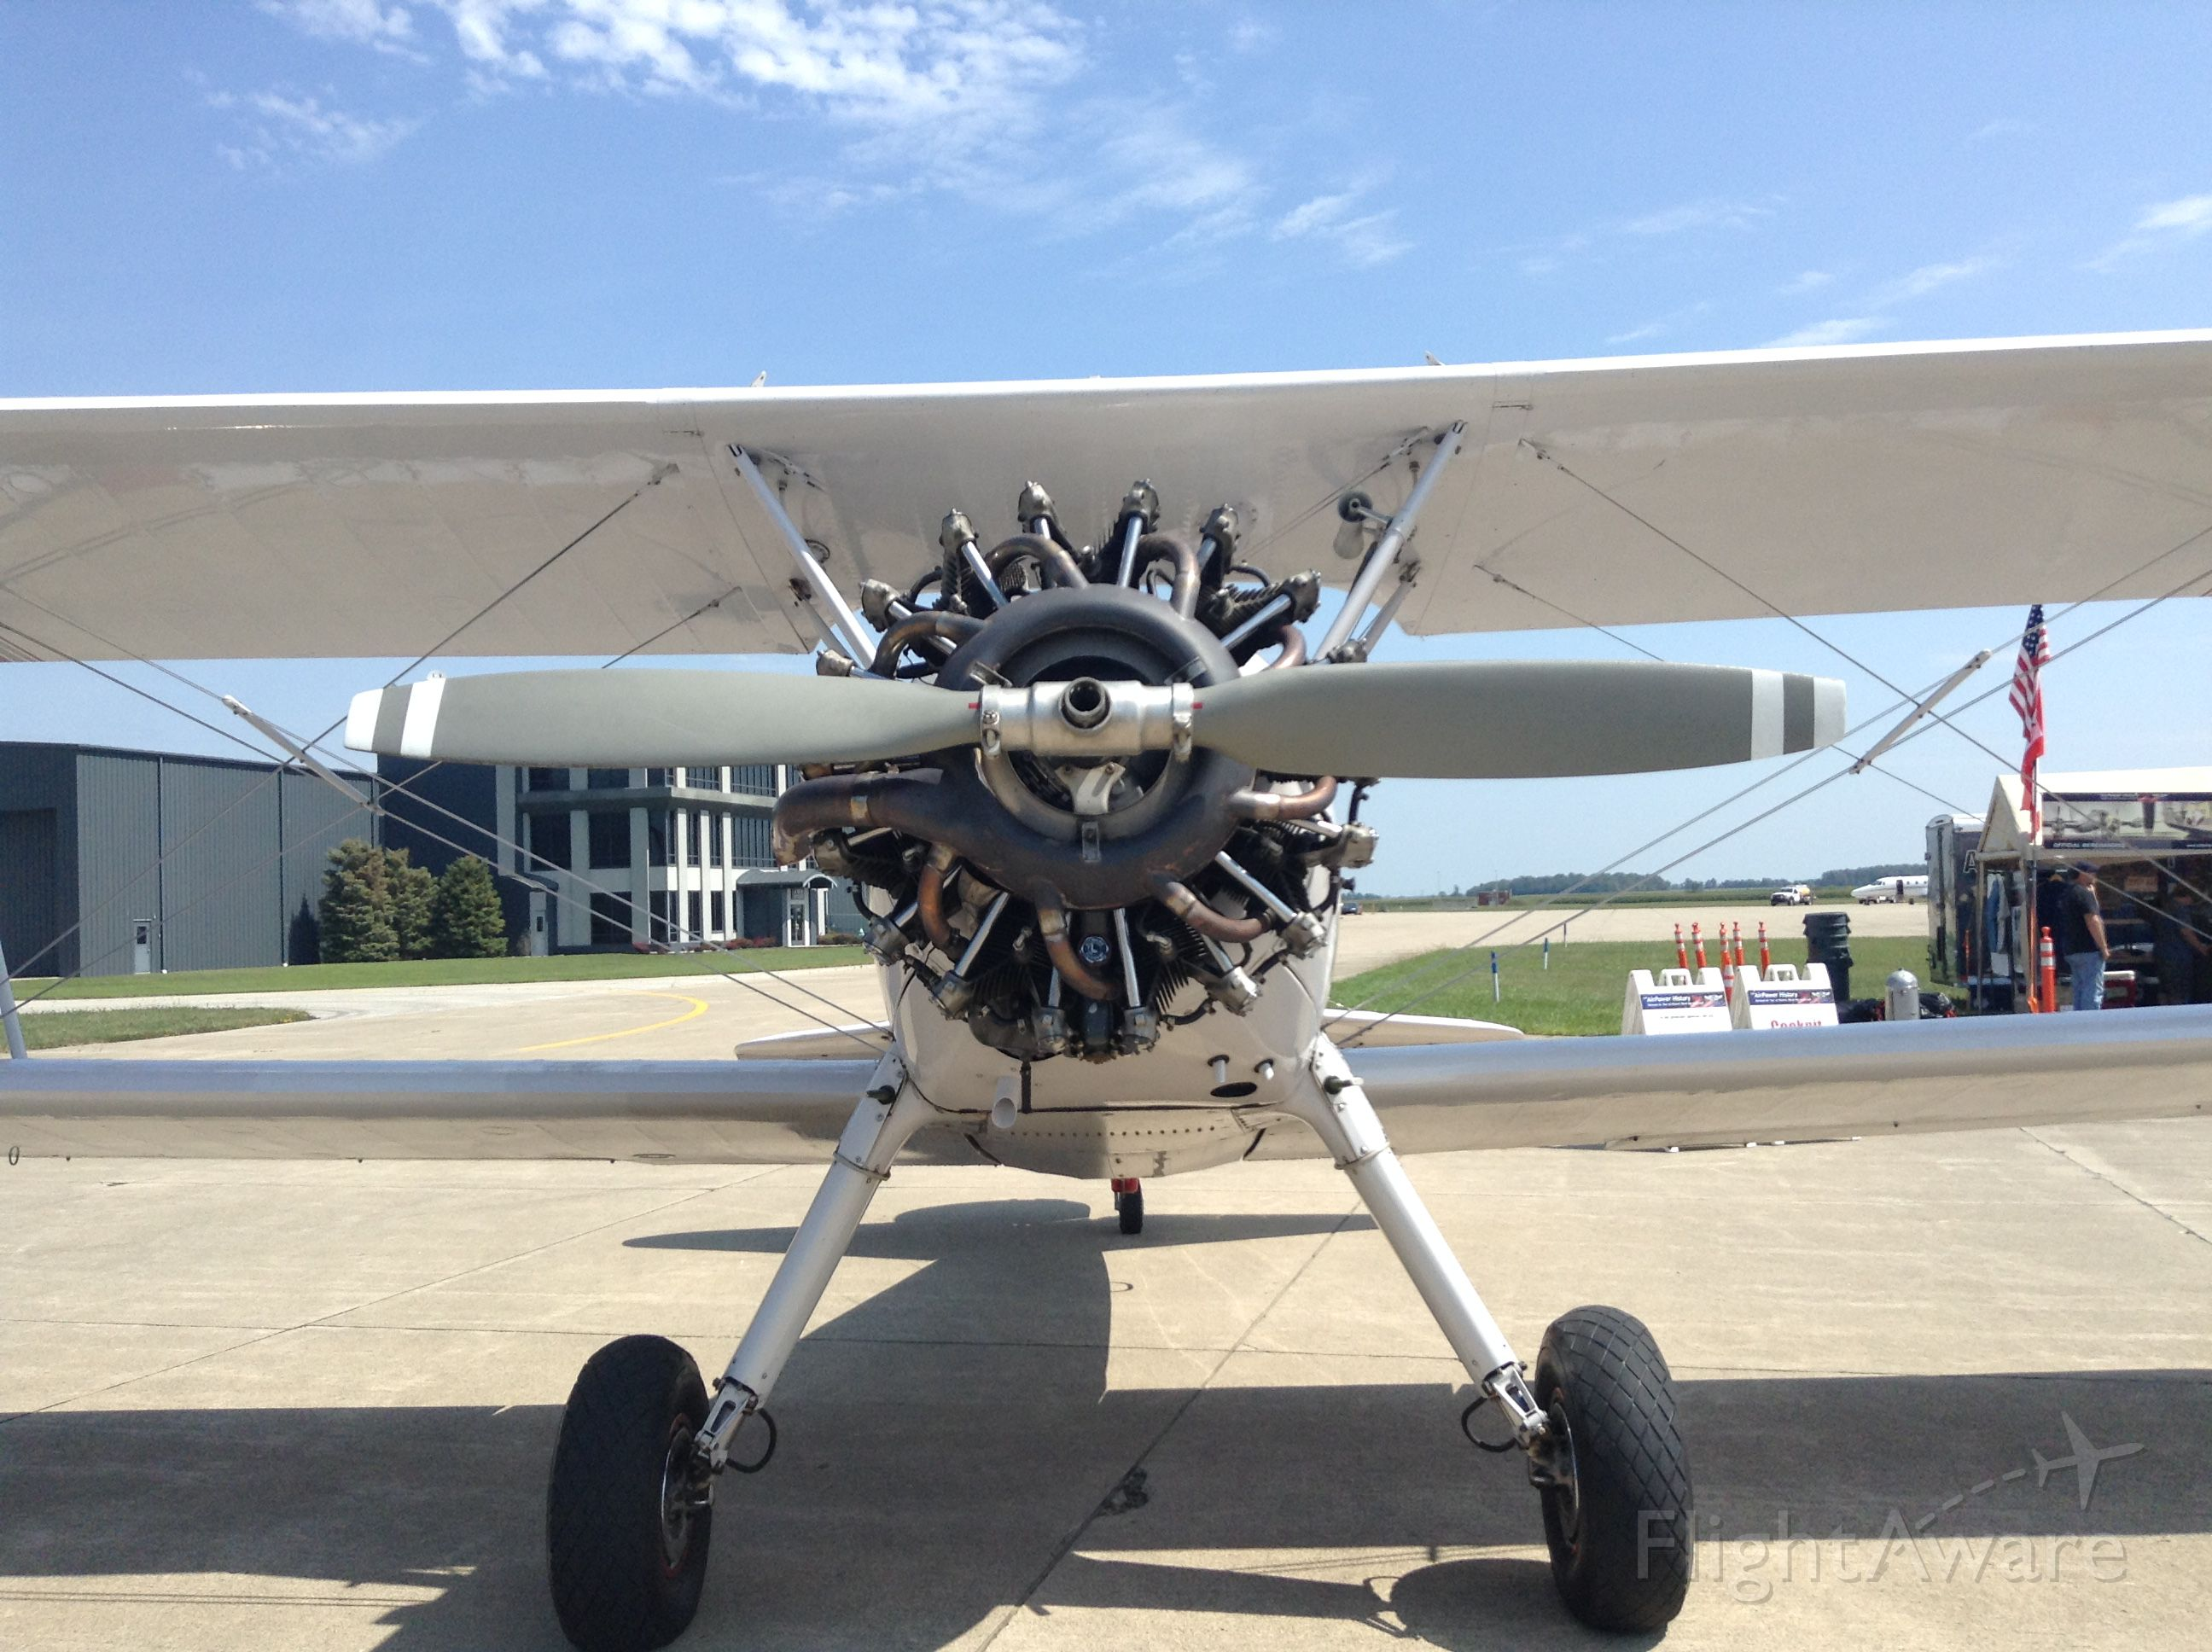 — — - Here is a aircraft at indianapolis regional during the CAF